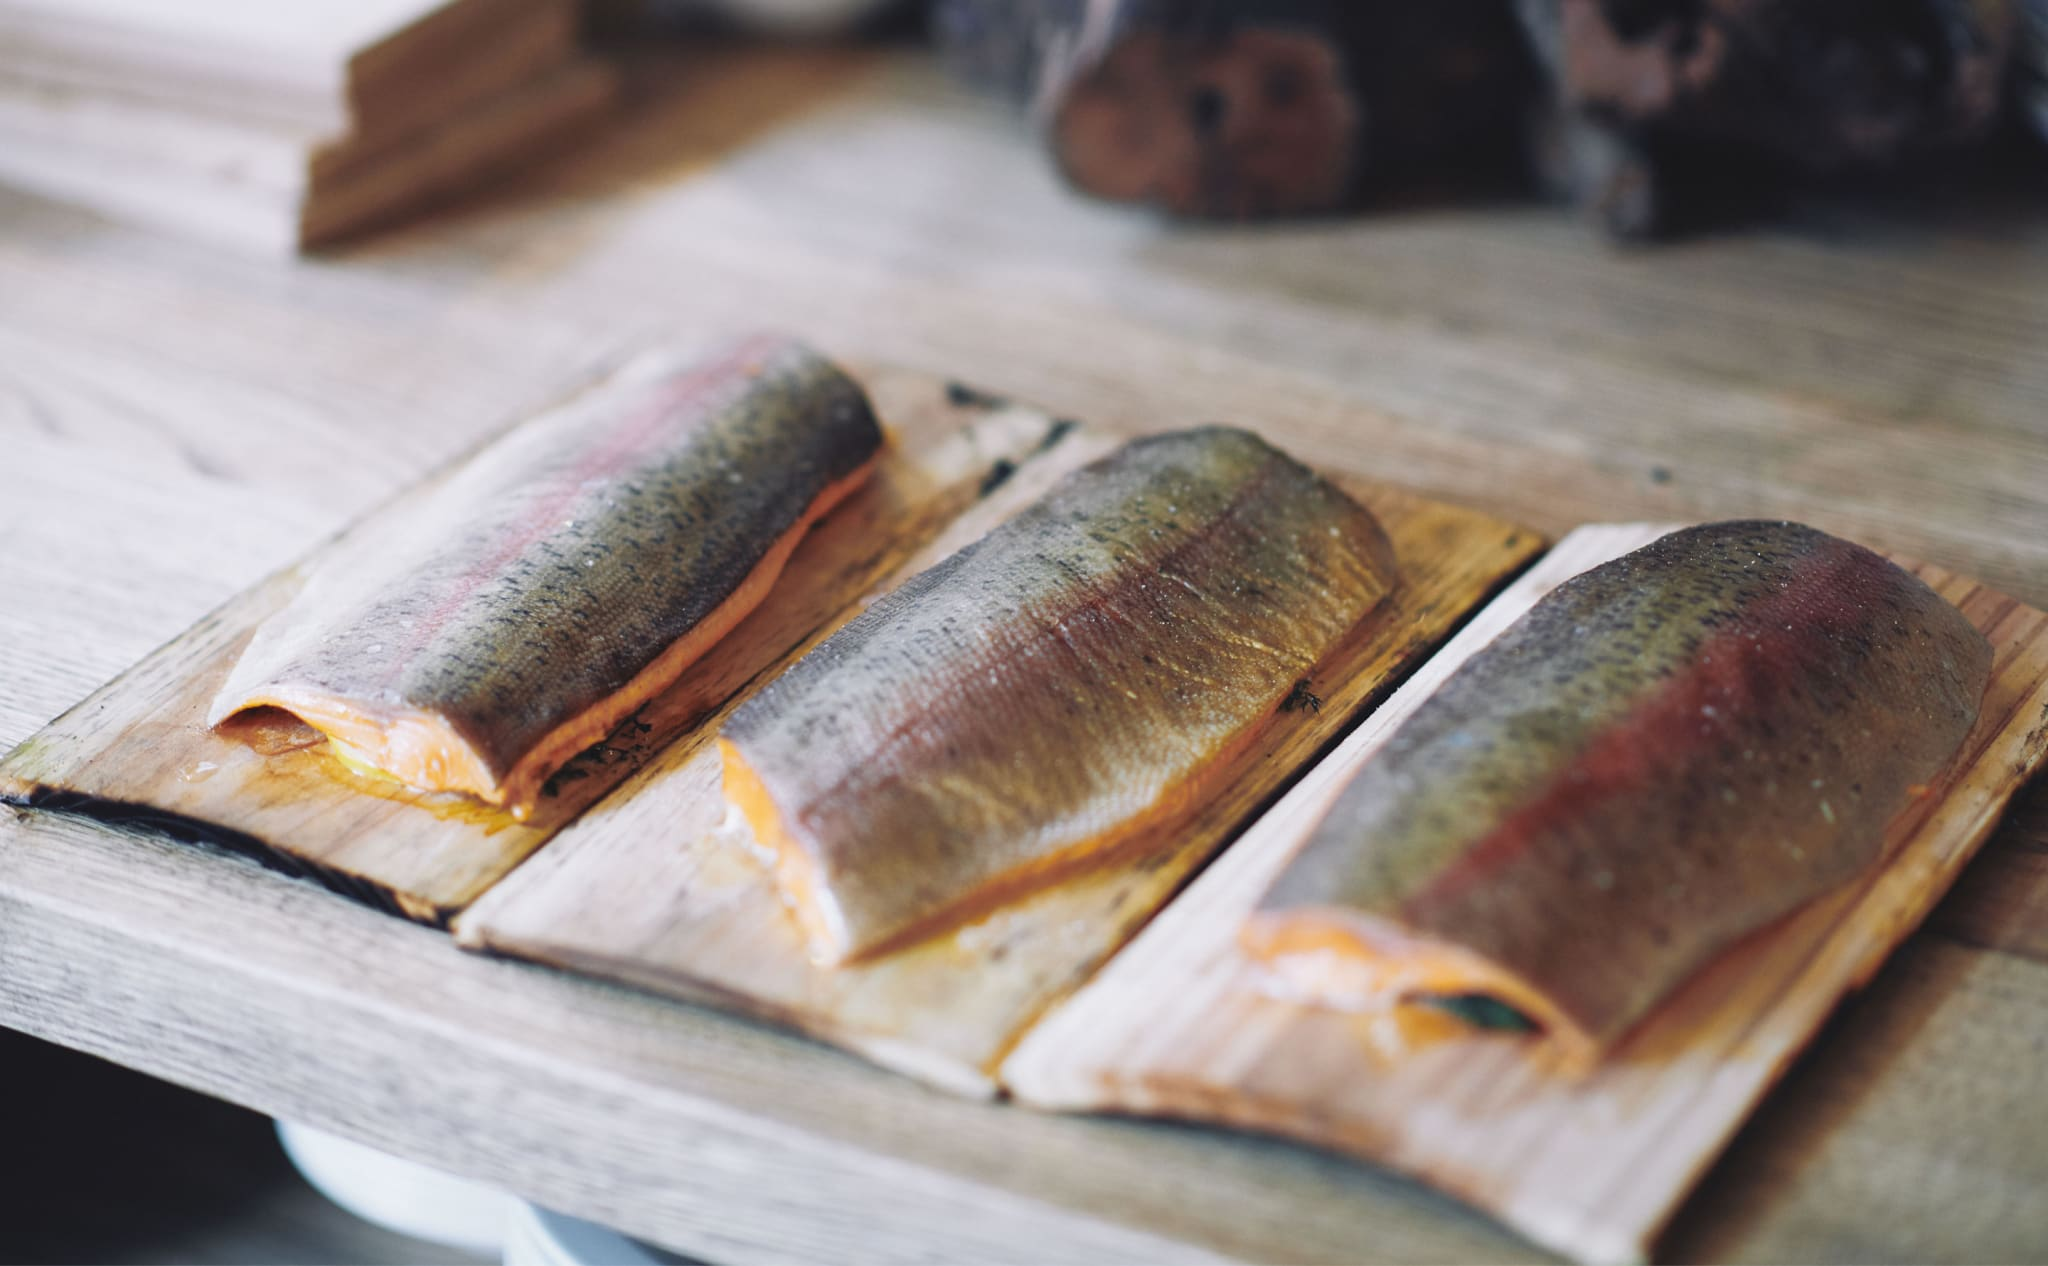 Three raw fish fillets on wooden trays.